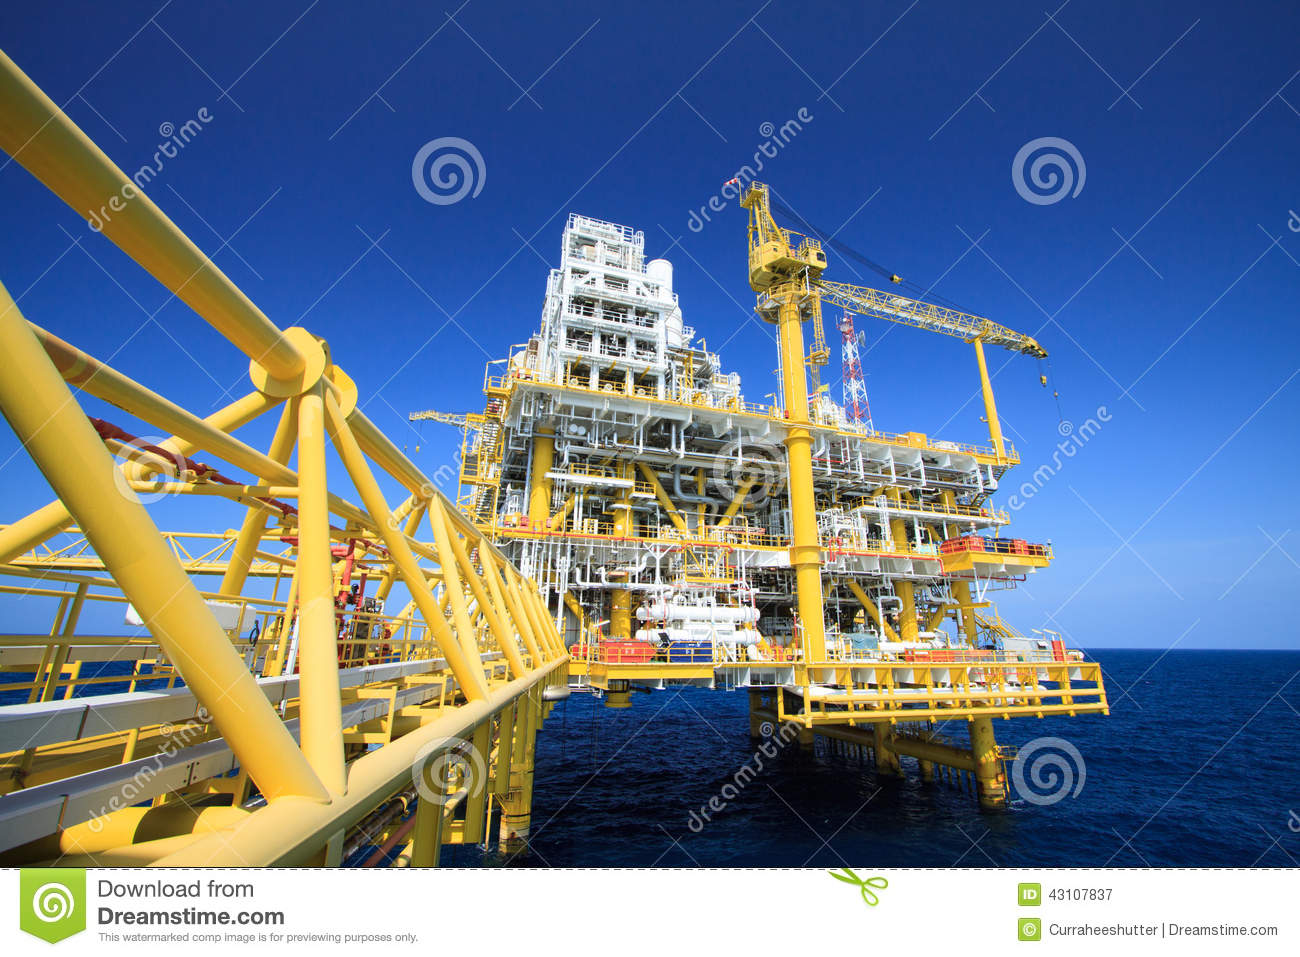 ethics in the oil and gas industry View essay - sustainability challenges in the gas and oil industry from business 3443 at fordham university sustainability challenges in the gas and oil industry ethics in business questions for.